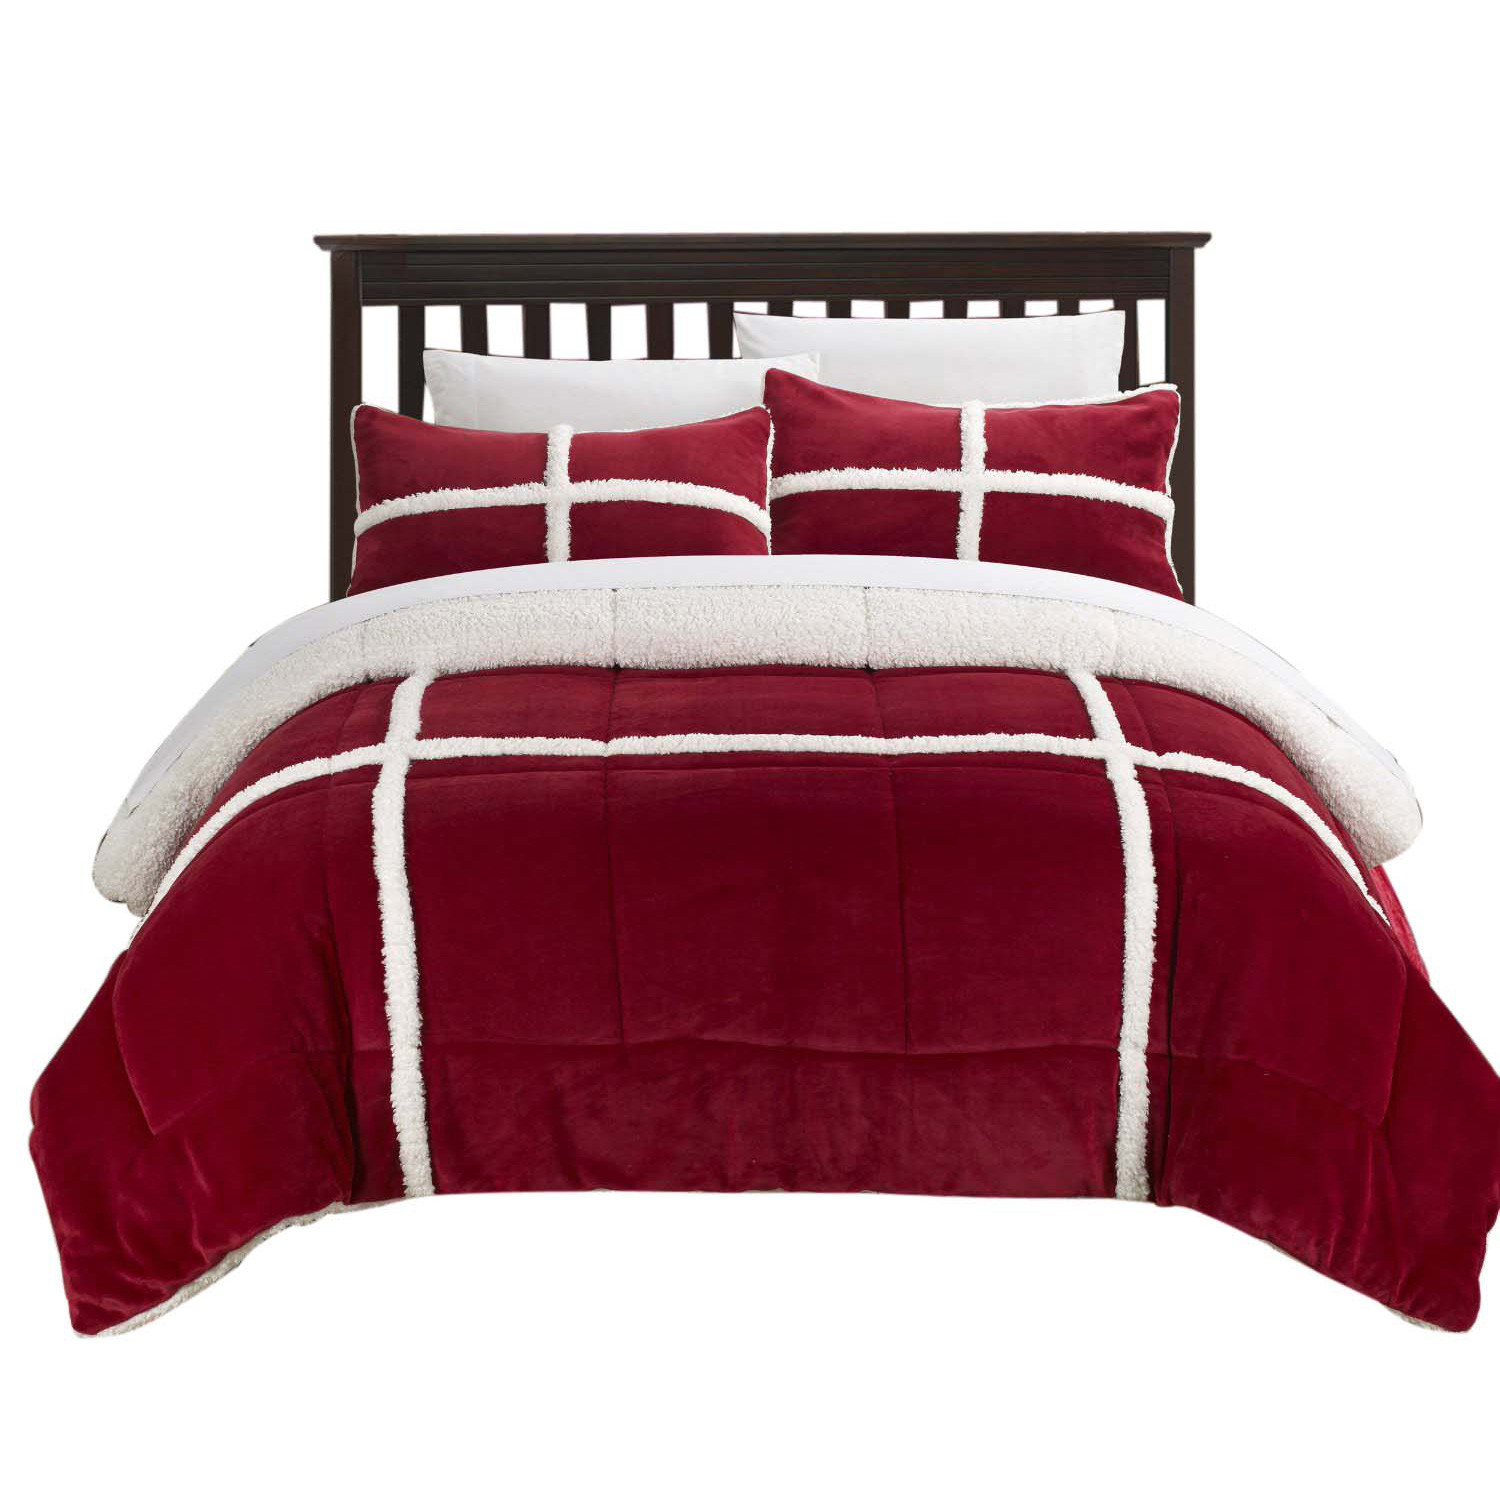 Chic Camille Mink Chloe Sherpa Lined 2 Piece Comforter Set Twin X-Long Red